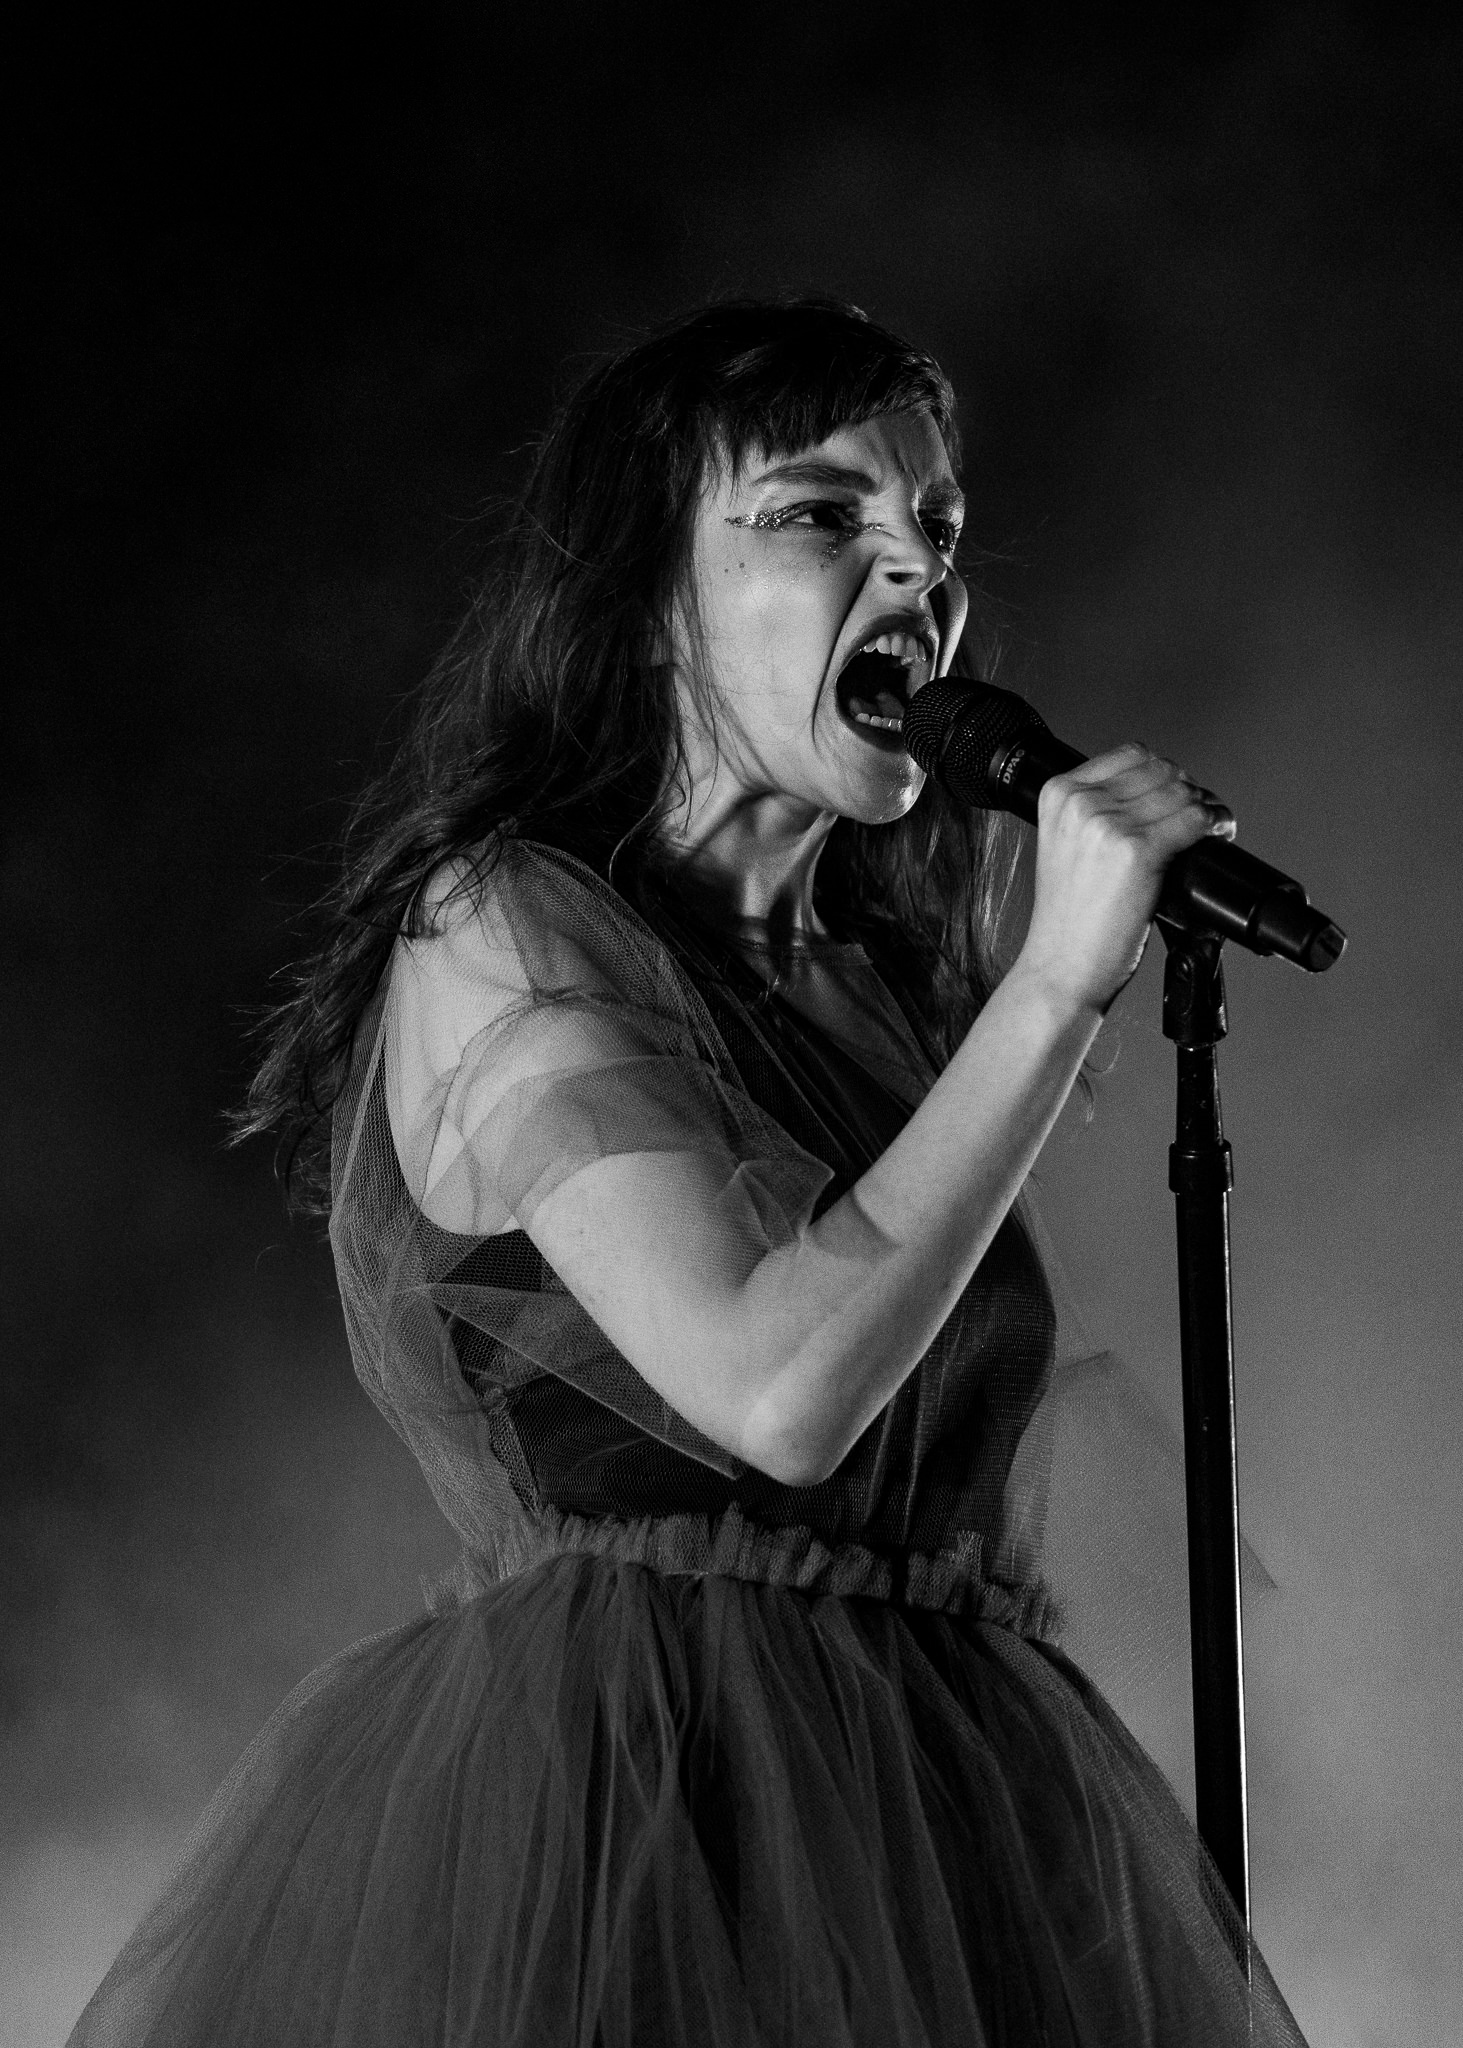 190428-kirby-gladstein-CHVRCHES-WOMH-Houston-00147-2.jpg